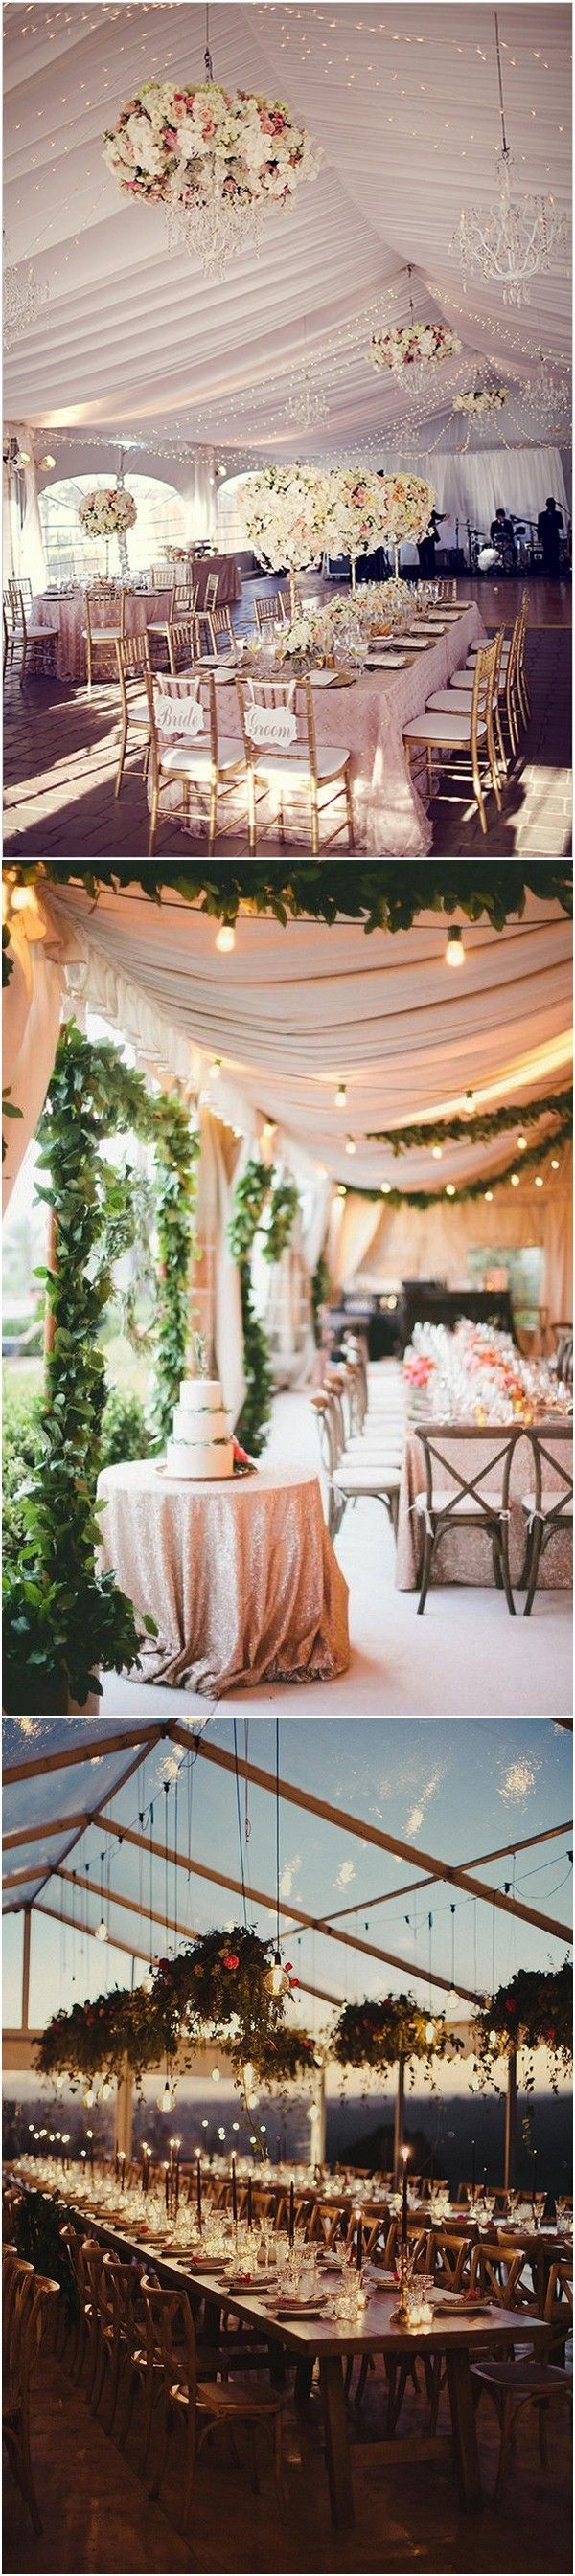 3 best images about Receptions on Pinterest   Tent wedding ...